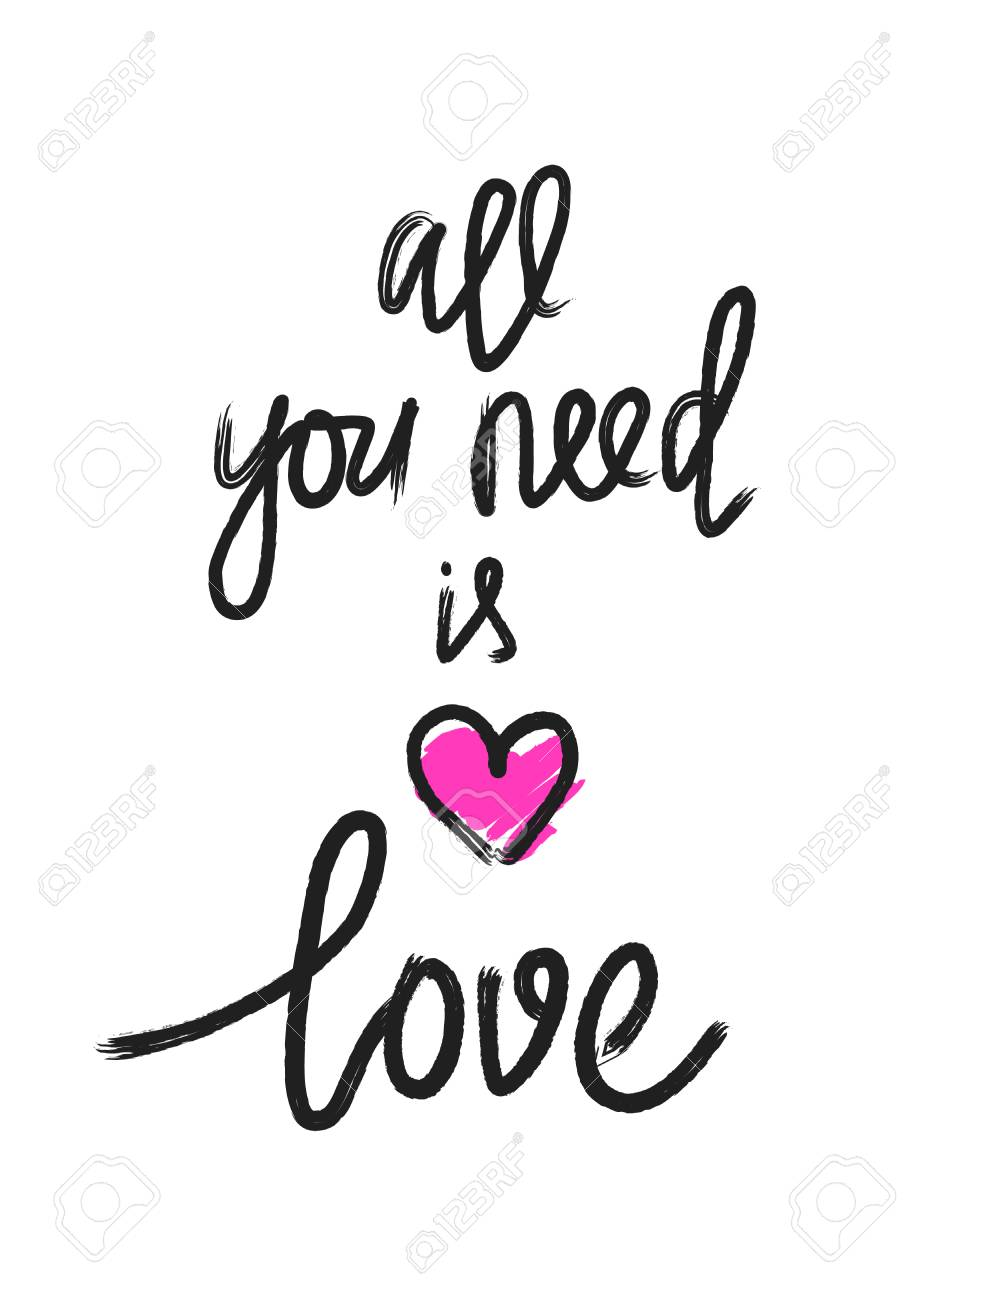 All you need is love vector calligraphy grunge design.